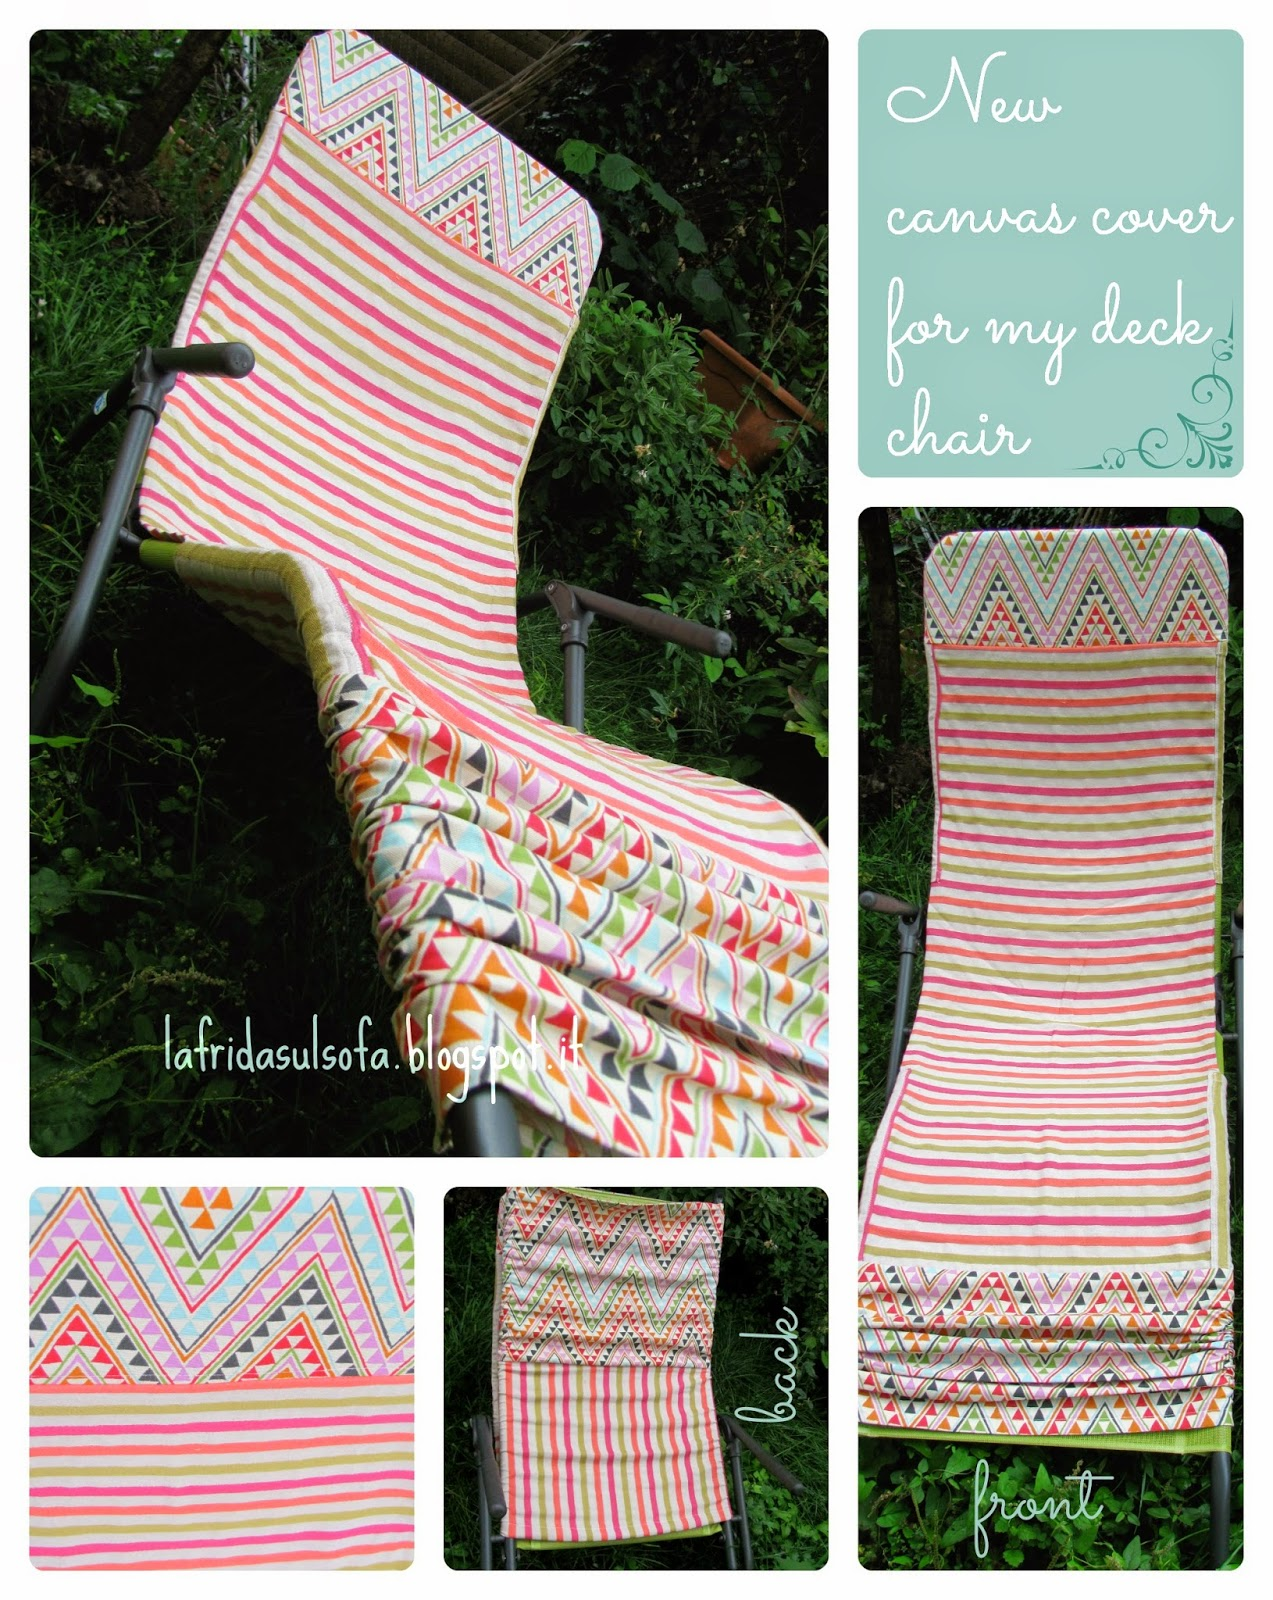 La frida sul sofà: Nuovo rivestimento in cotone per lo sdraio. New canvas cover for my deck chair